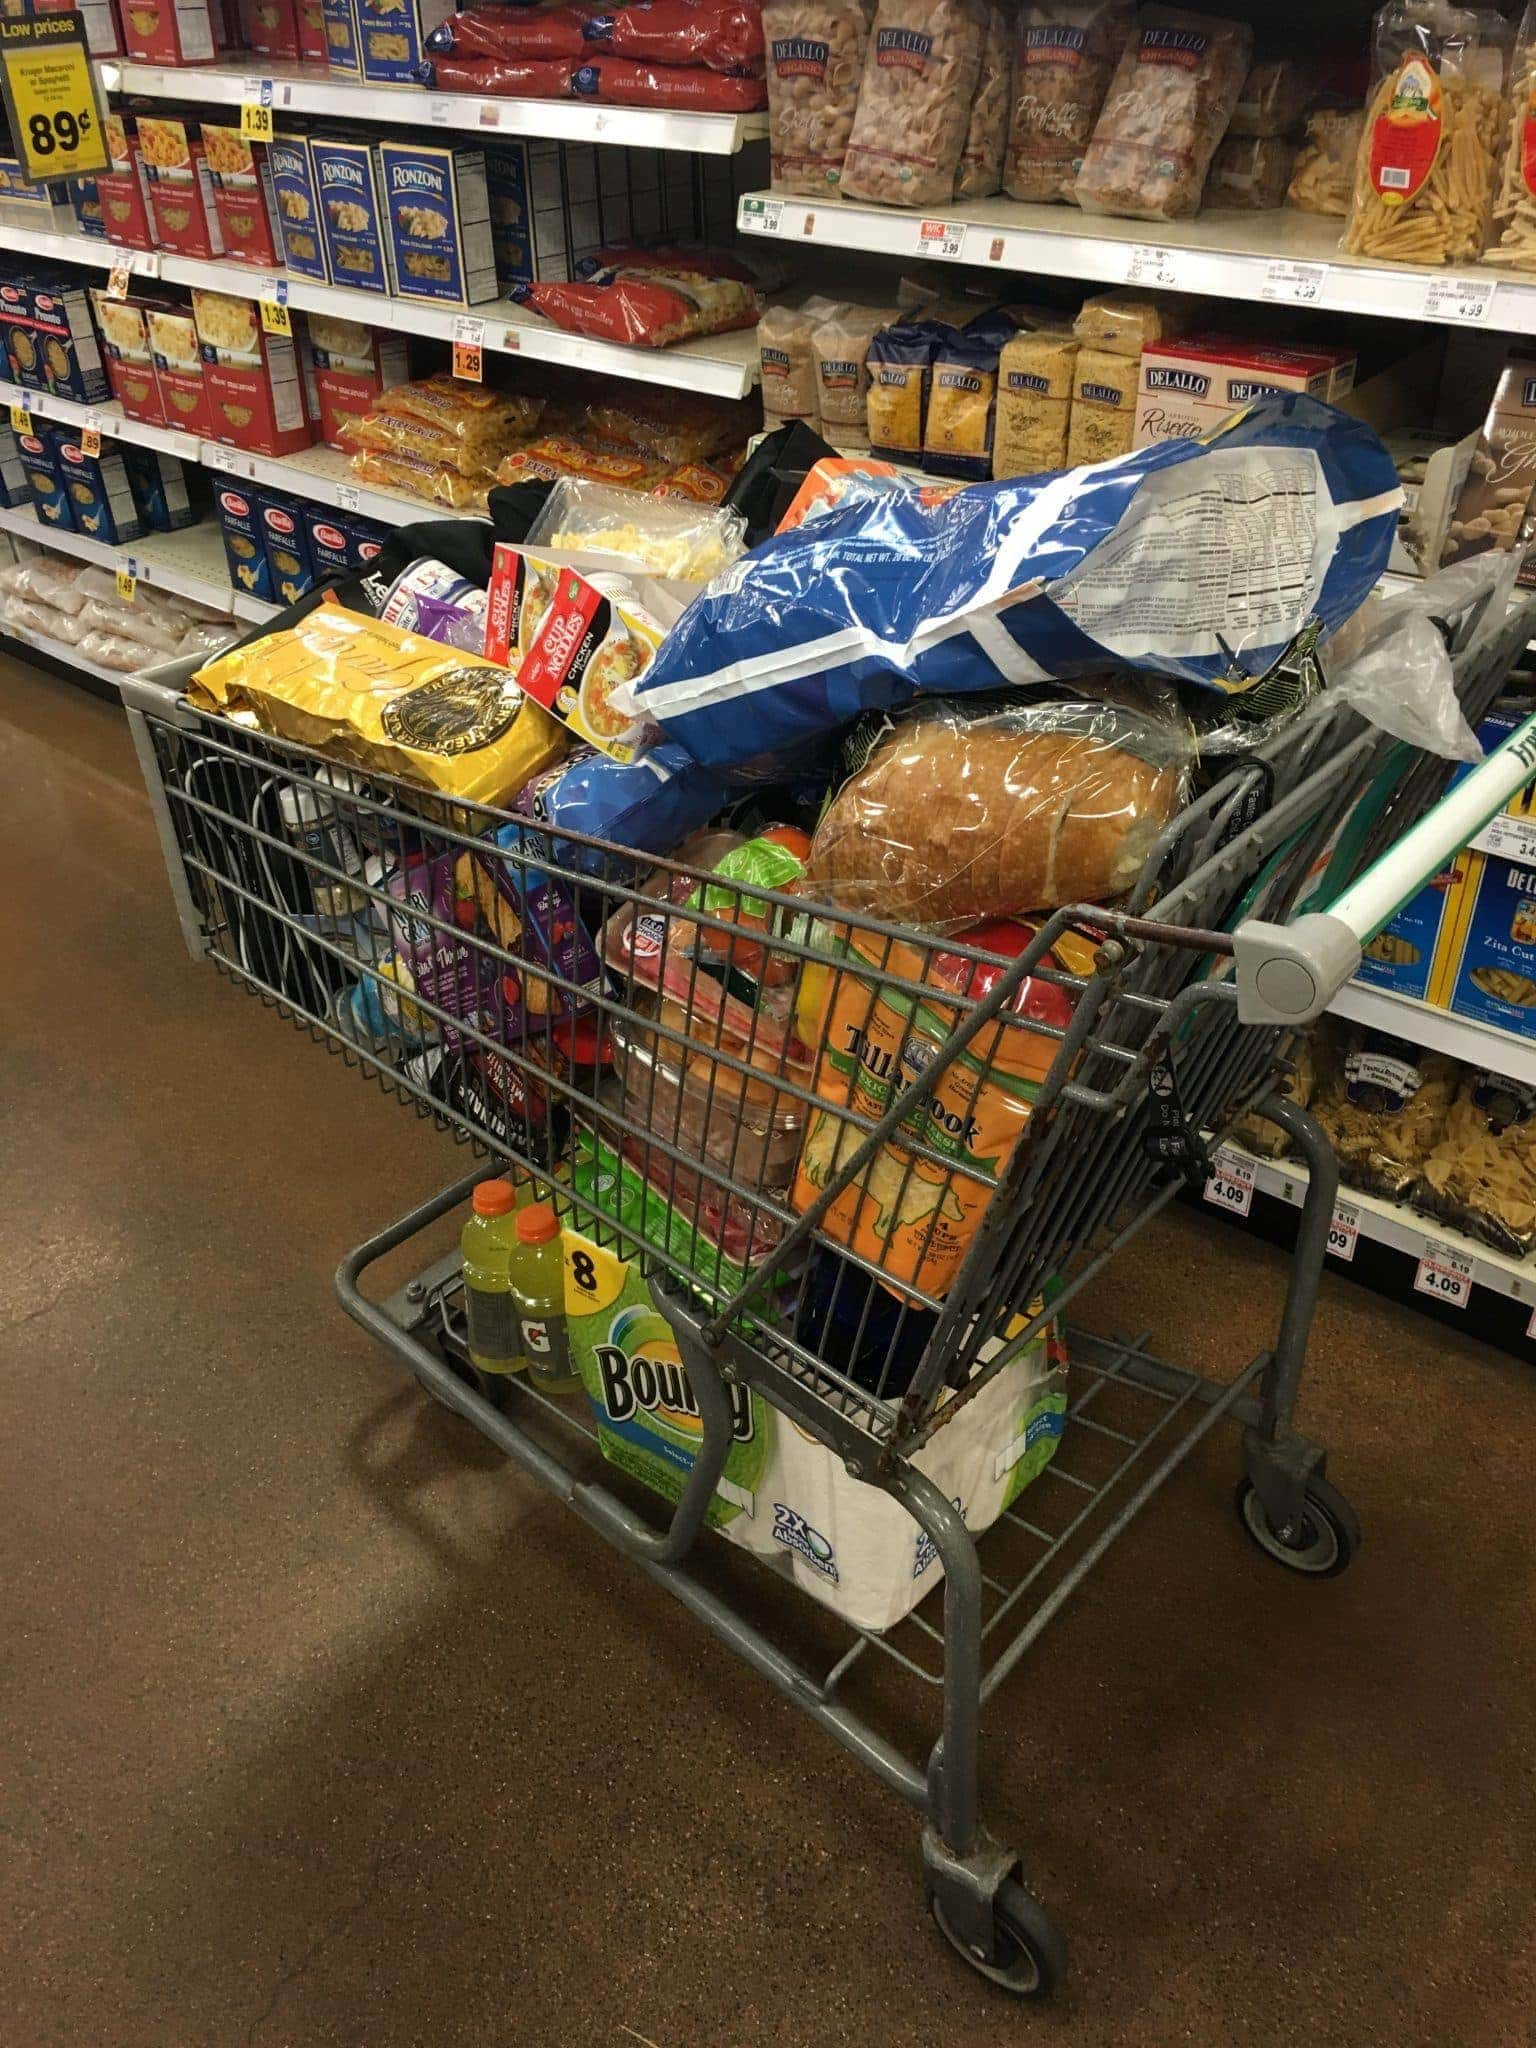 One grocery cart...